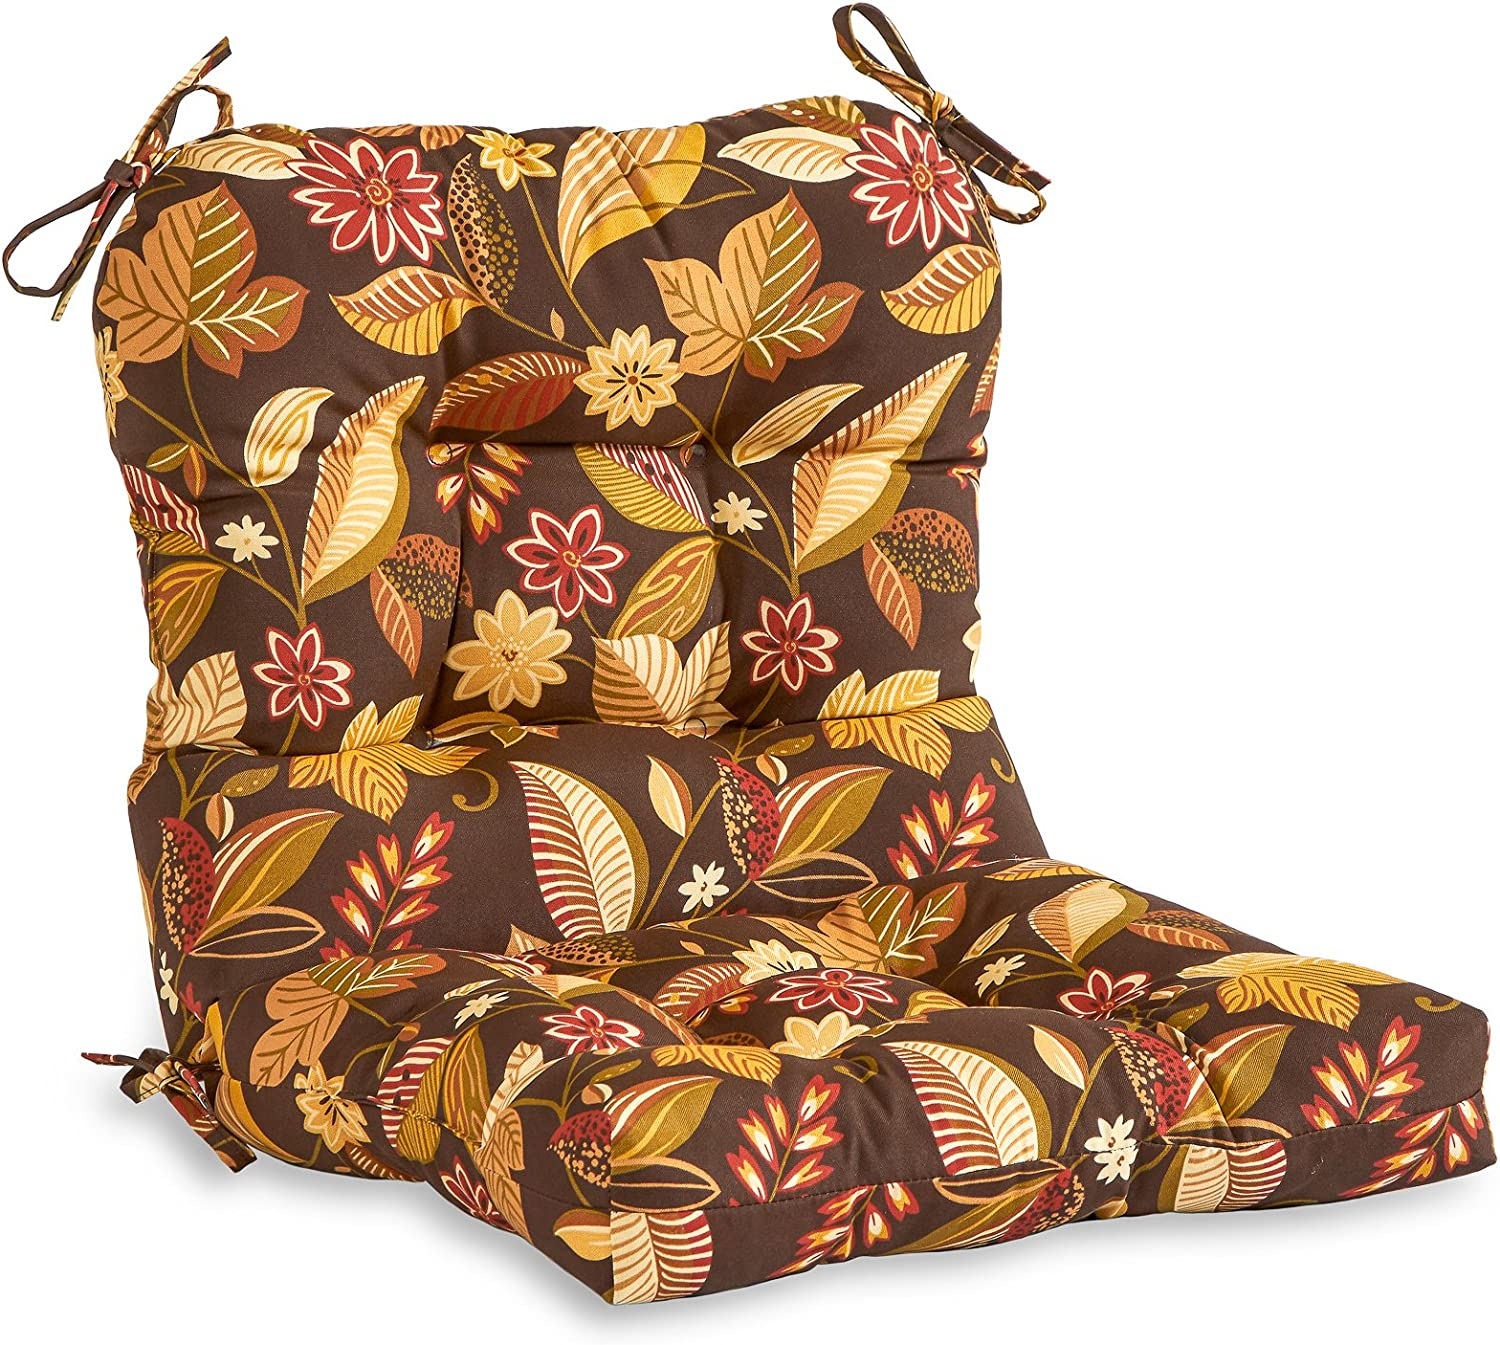 Greendale Home Fashions AZ4808-TIMBFLORAL Russet Floral 38 x 21-inch Outdoor Chair Cushion